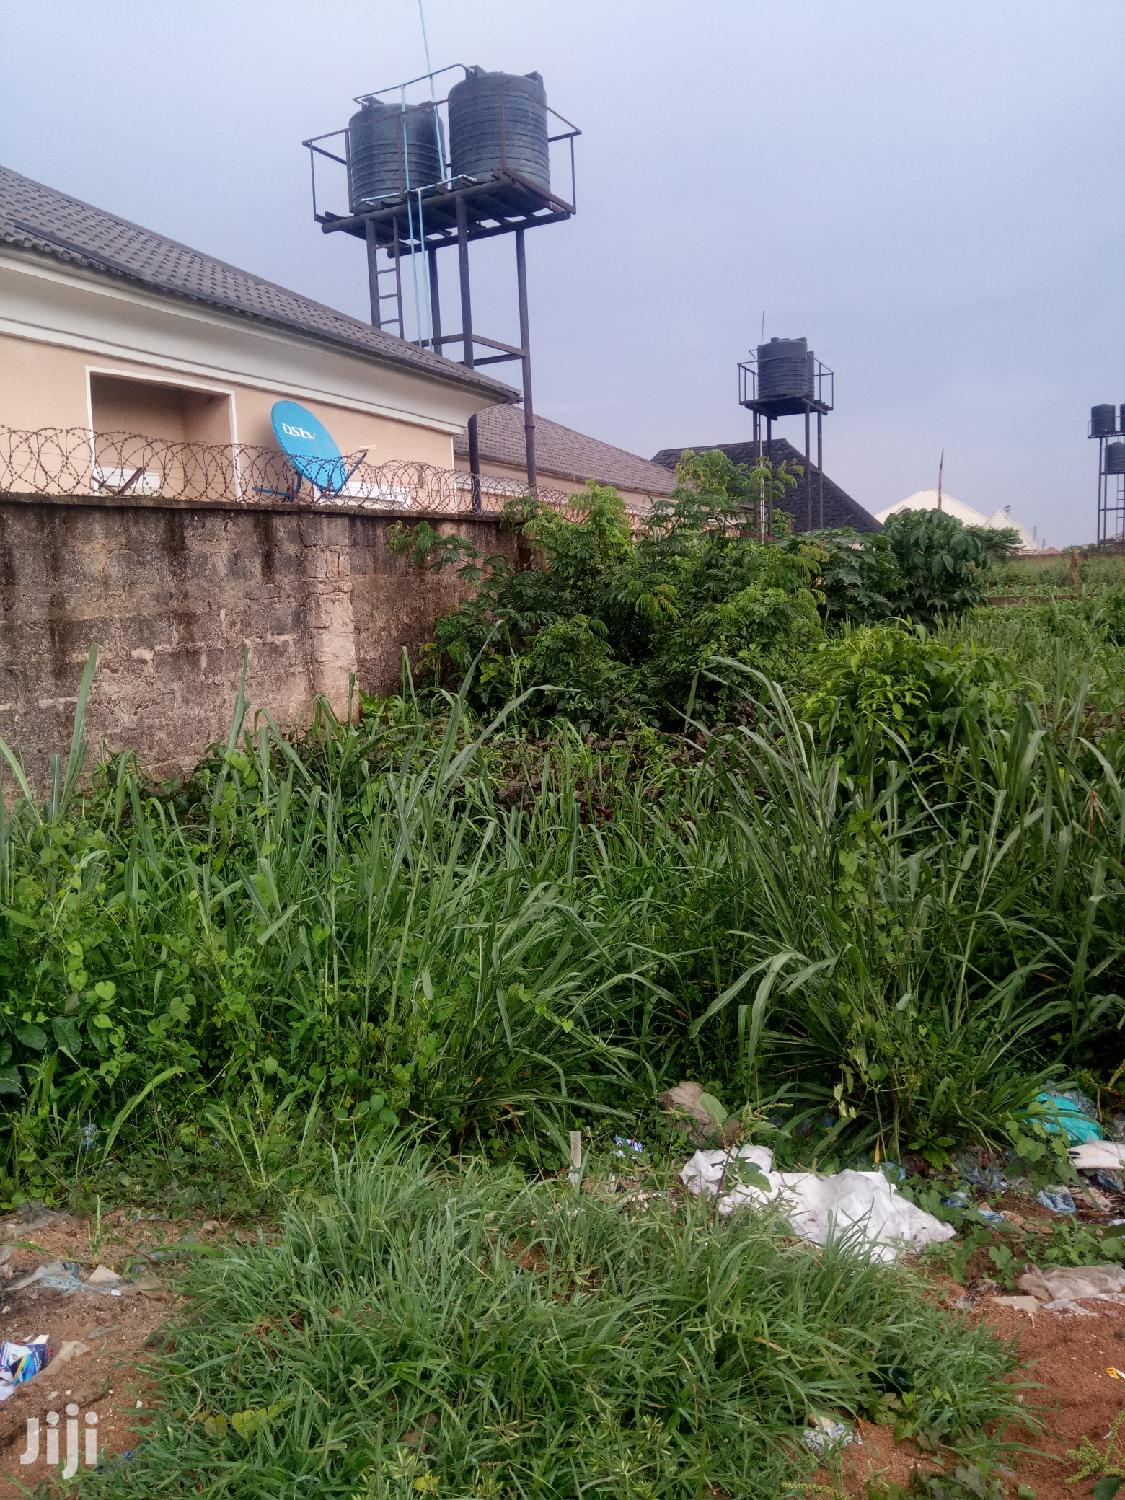 Leveled Genuine Plot Of Land Measuring 100X100FT For Outright Sale | Land & Plots For Sale for sale in Benin City, Edo State, Nigeria